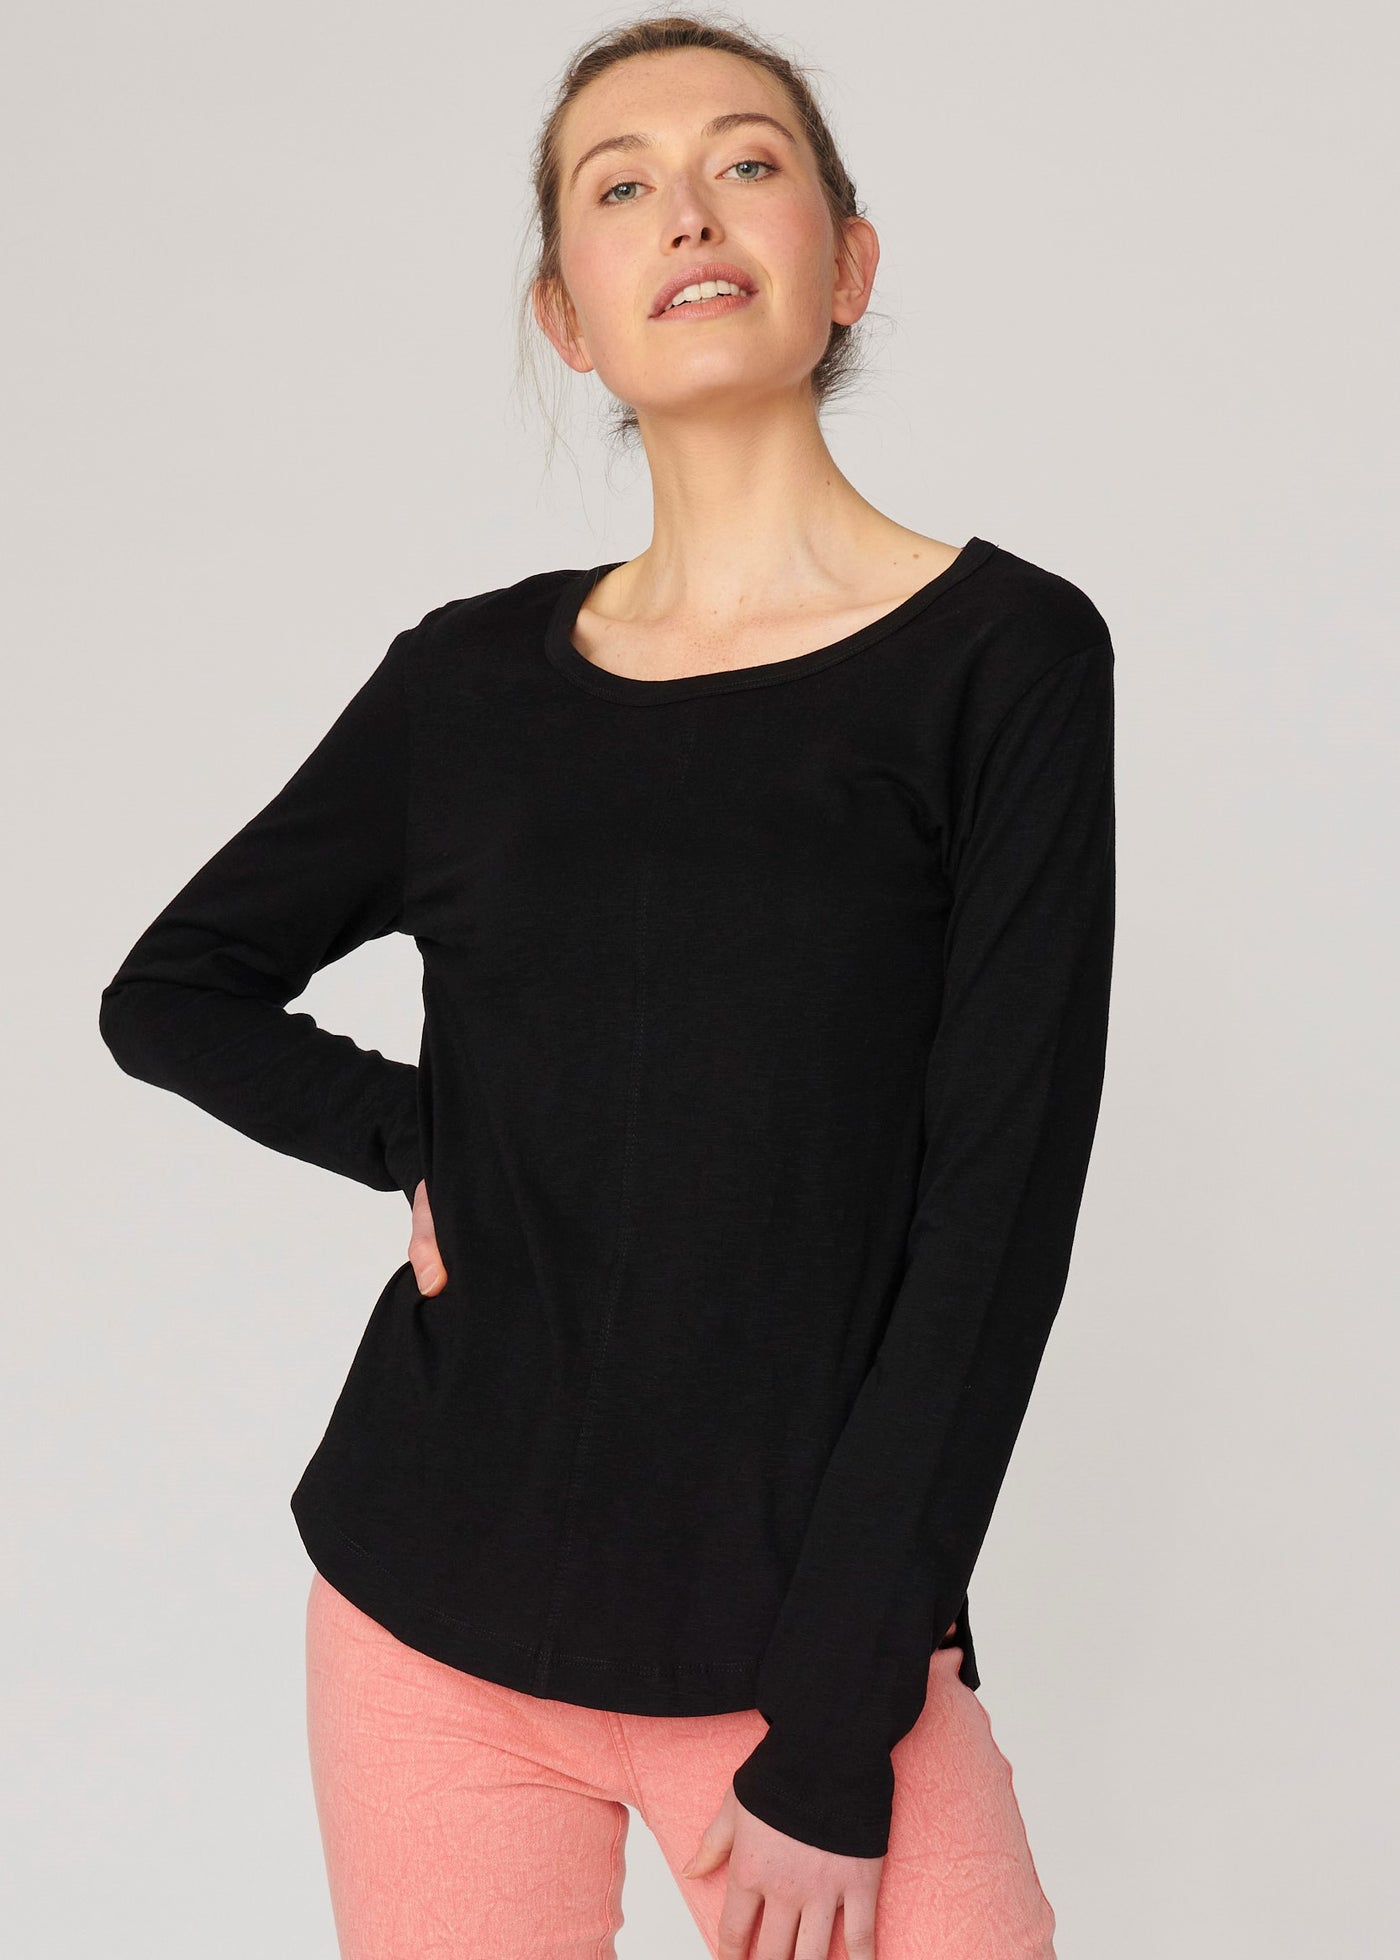 Lulu New York Long Sleeve Tee </p>(2 colours)